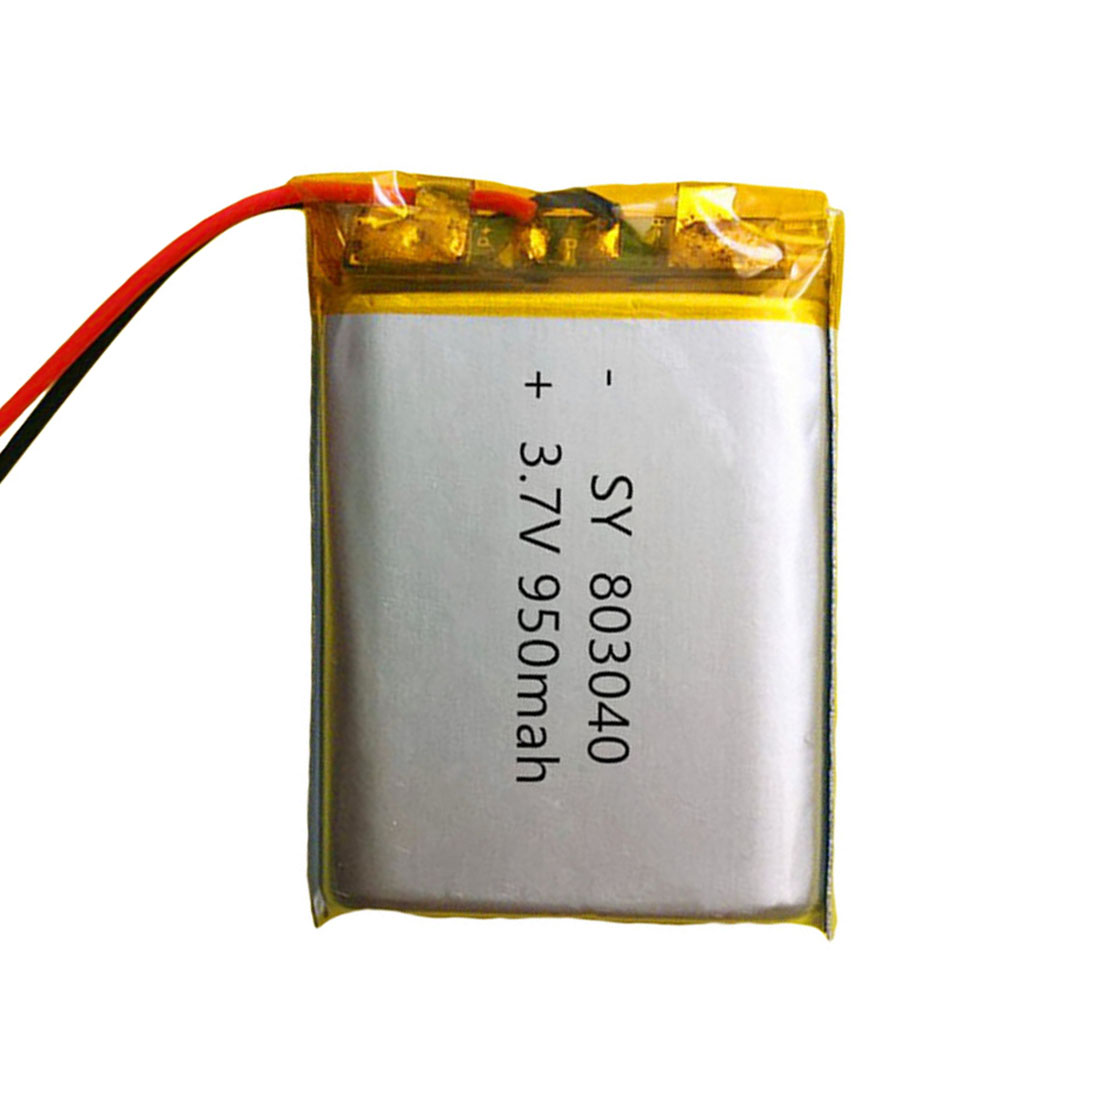 For MP4 MP5 GPS PSP 1PC <font><b>3.7V</b></font> <font><b>950mAh</b></font> 803040 Lithium Polymer Li-Po ion Rechargeable <font><b>Battery</b></font> For Mobile Pocket PC e-books Bluetooth image